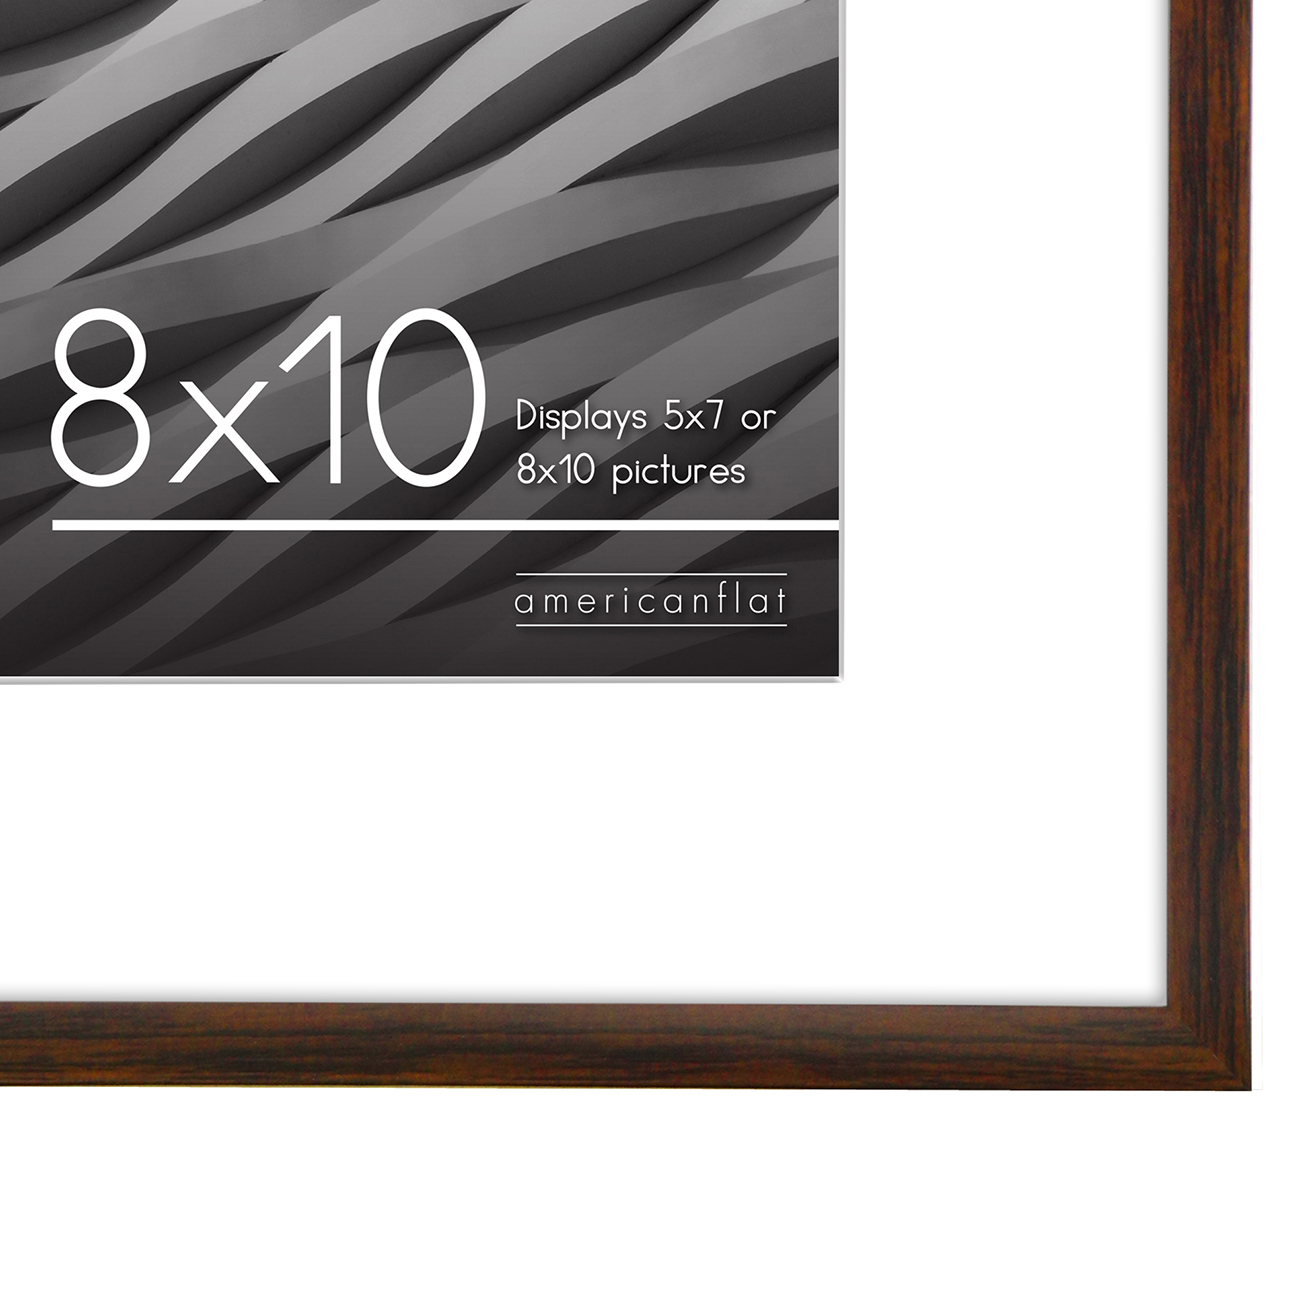 miniature 58 - Americanflat Thin Picture Frame 5x7 8x10 11x14 8.5x11 Wall Tabletop Pick Color